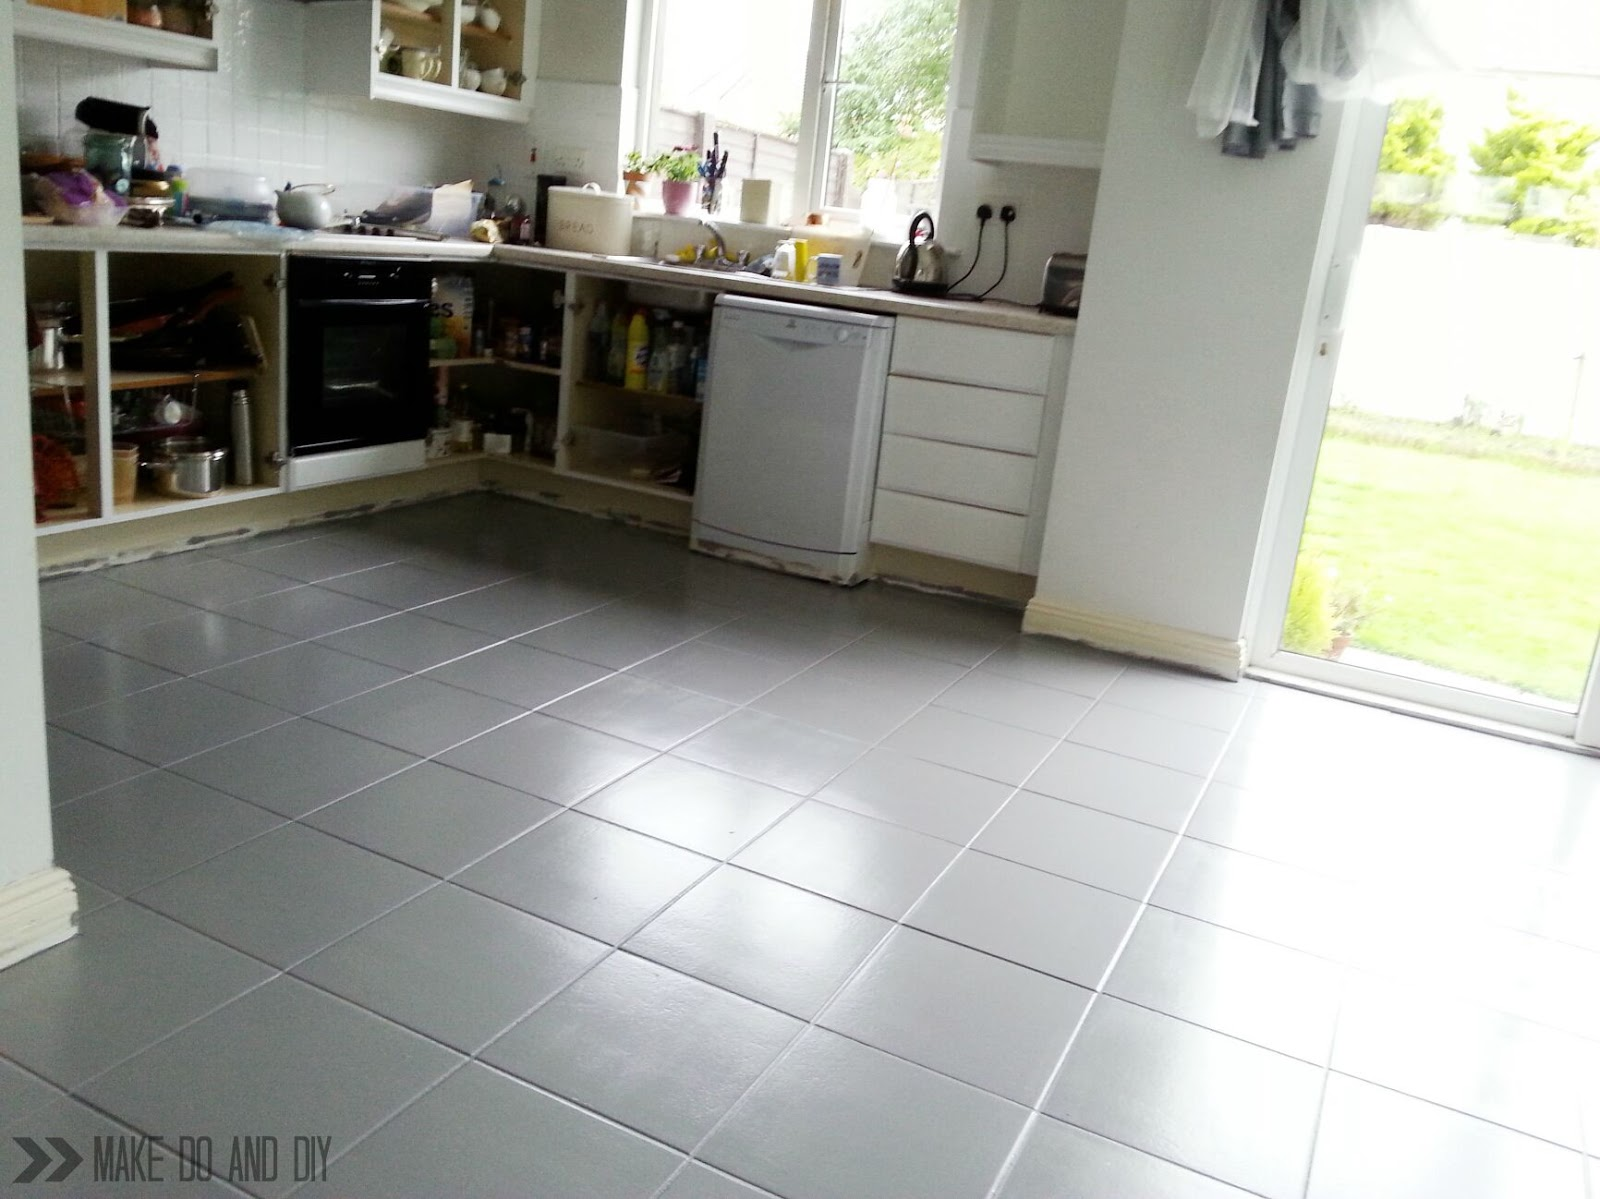 How To Paint A Tile Floor And What You Should Think About Before You